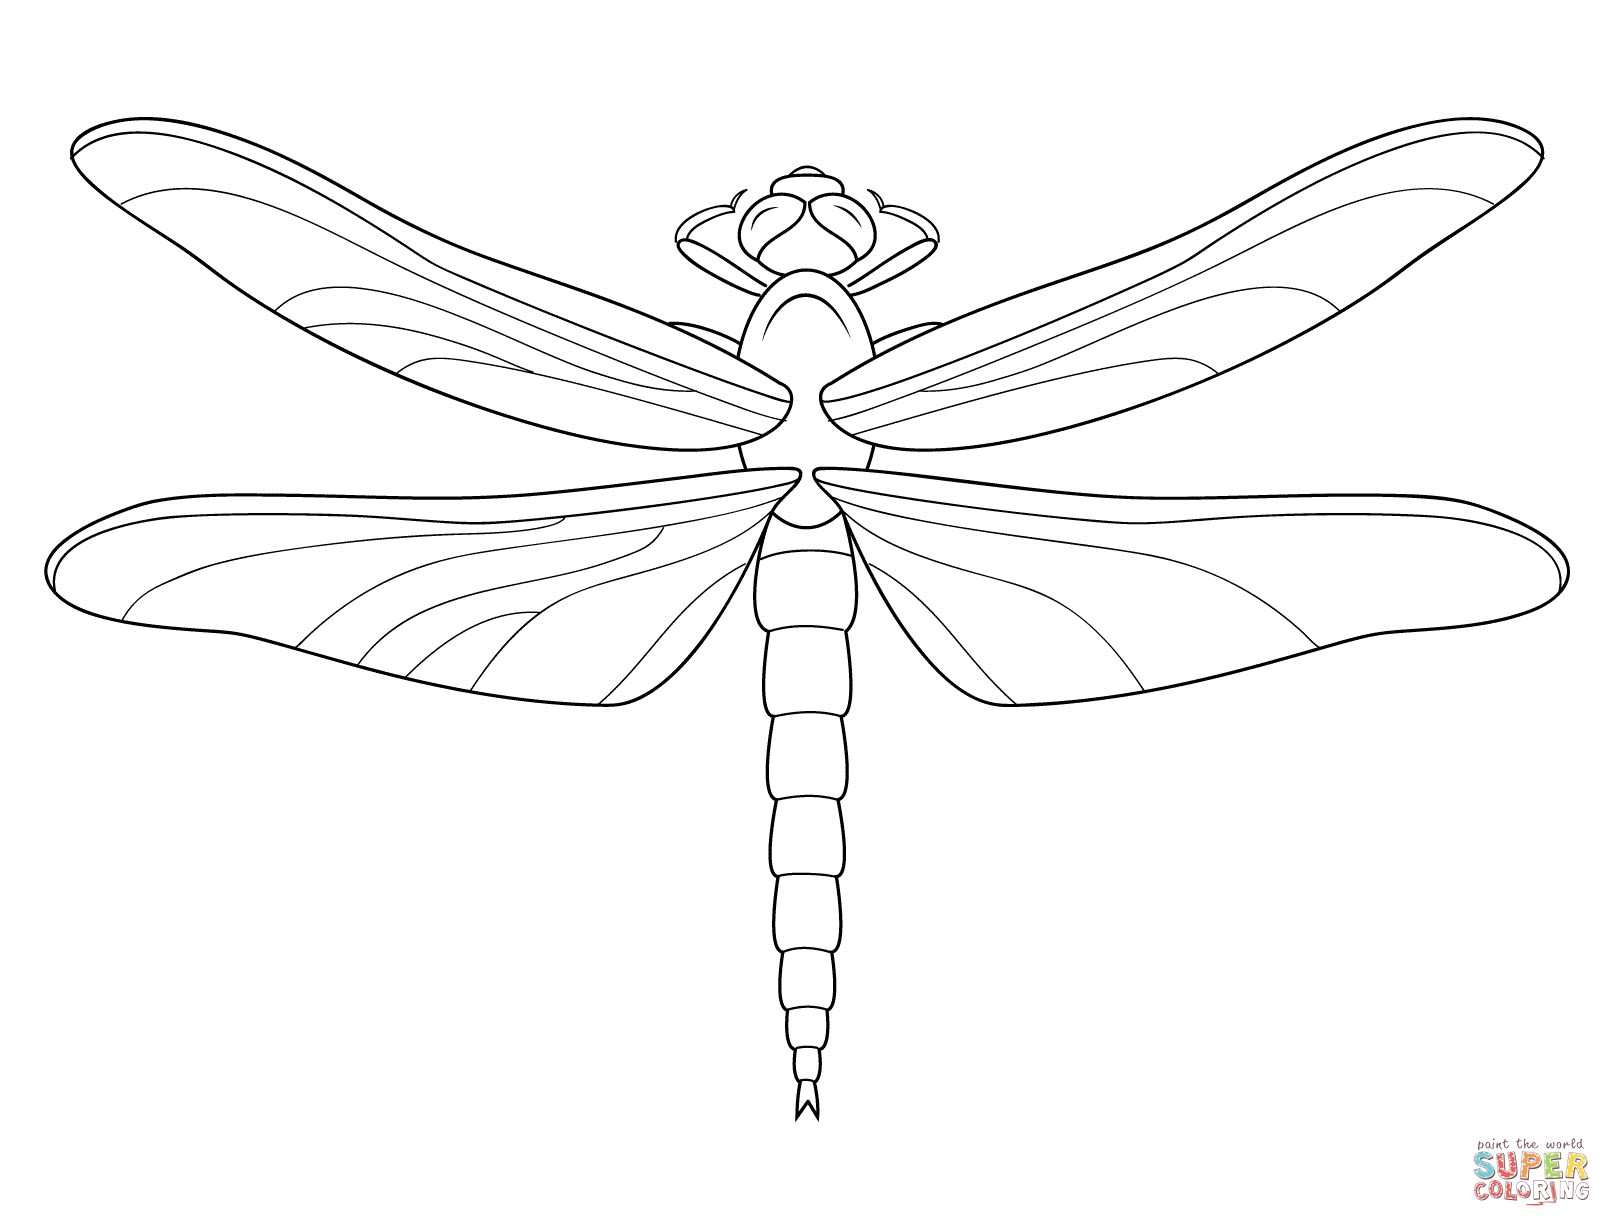 Dragonfly Coloring Page   Free Printable Coloring Pages - Free Printable Pictures Of Dragonflies